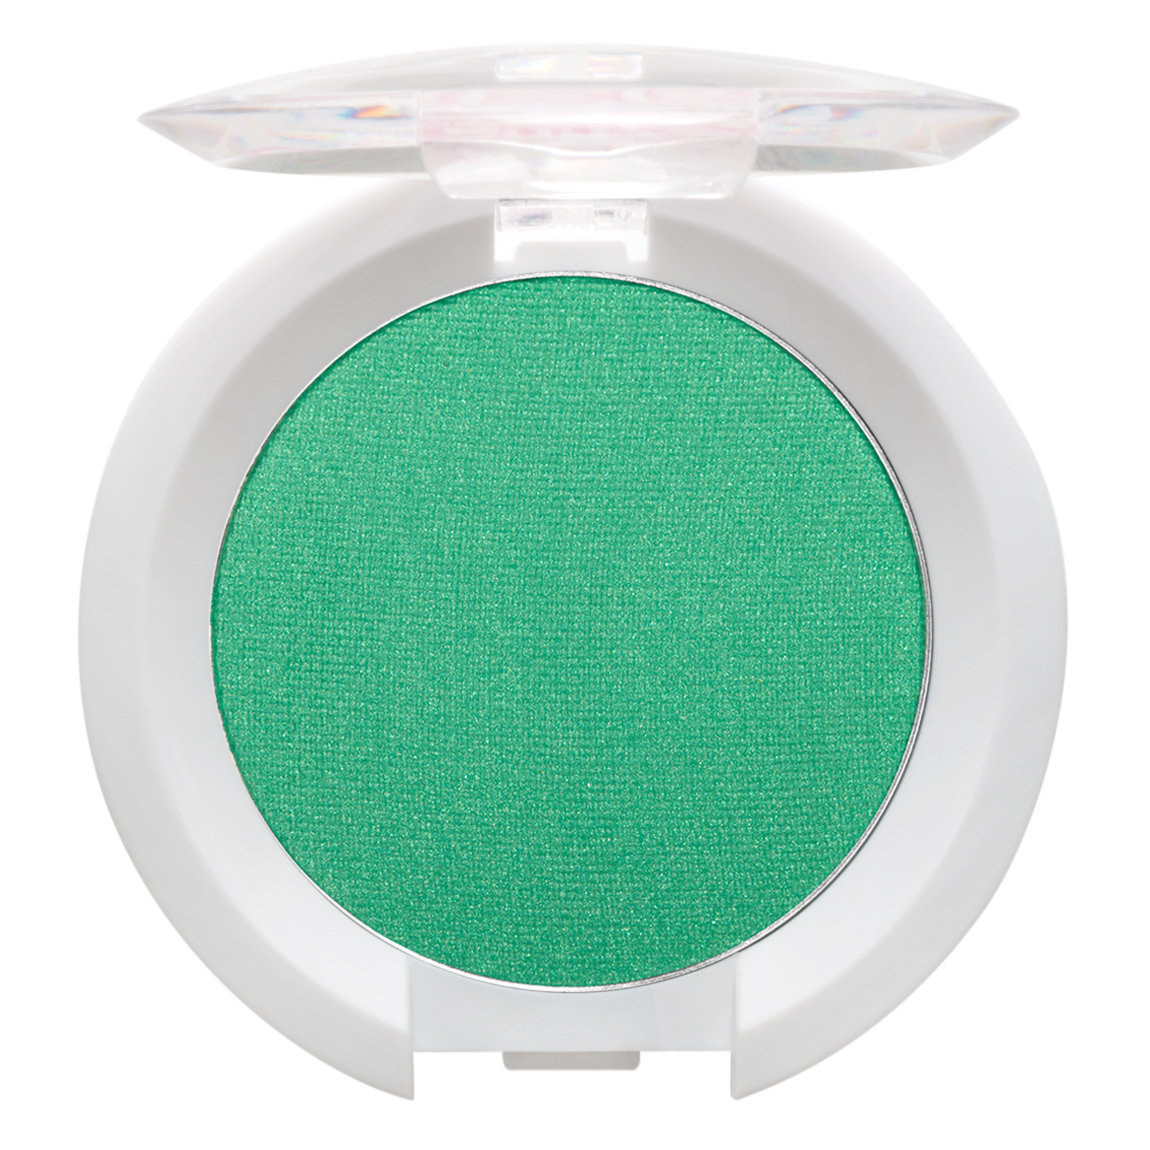 Sugarpill Cosmetics Pressed Eyeshadow Midori alternative view 1 - product swatch.